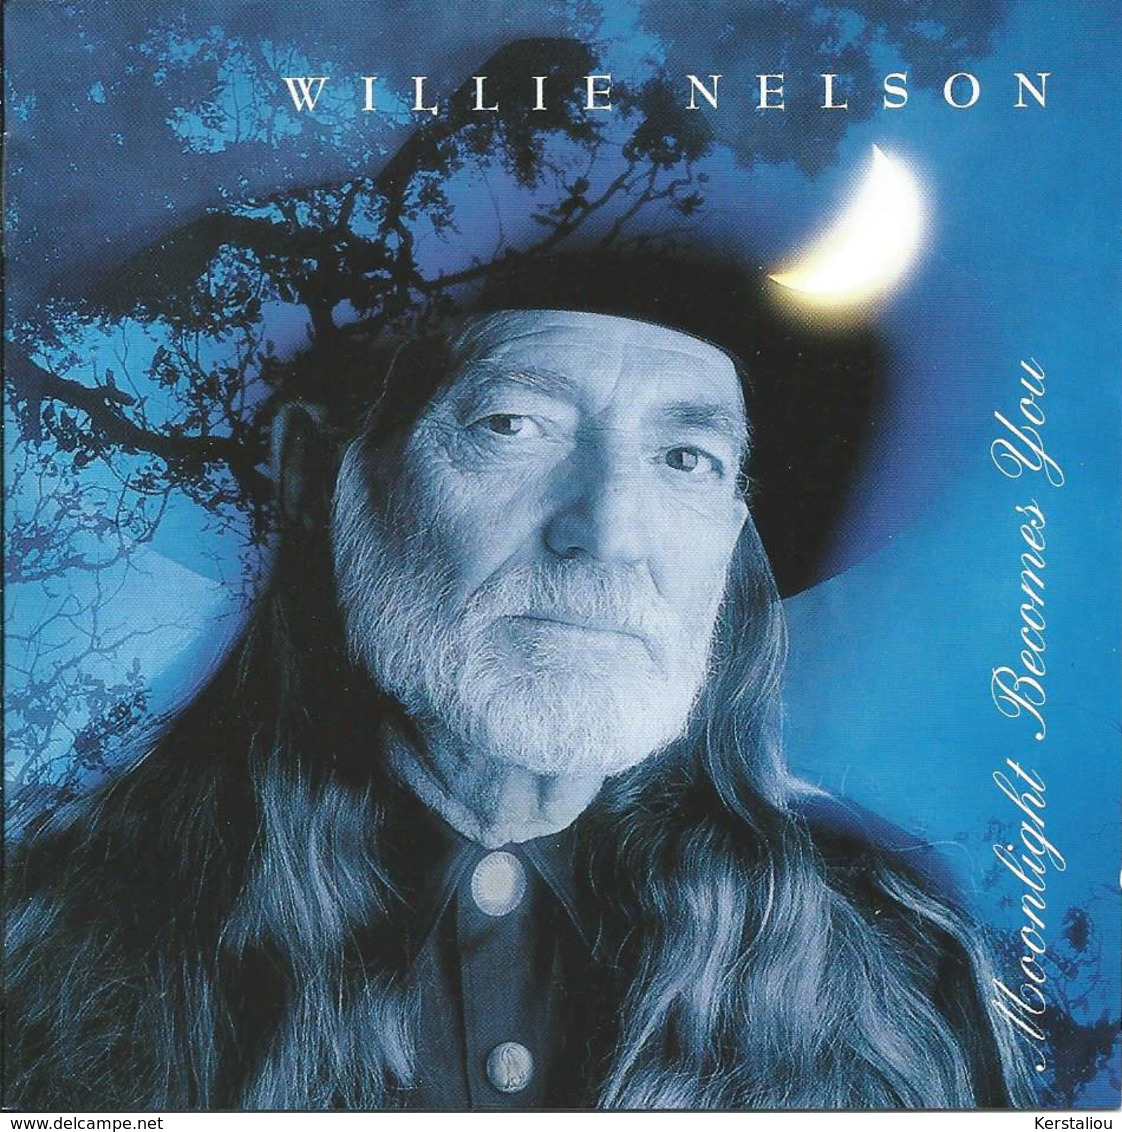 WILLIE NELSON – Moonlight Becomes You – CD – 1993 – 475945 2 – Justice Record Compagny/Columbia – Made In Austria - Country & Folk